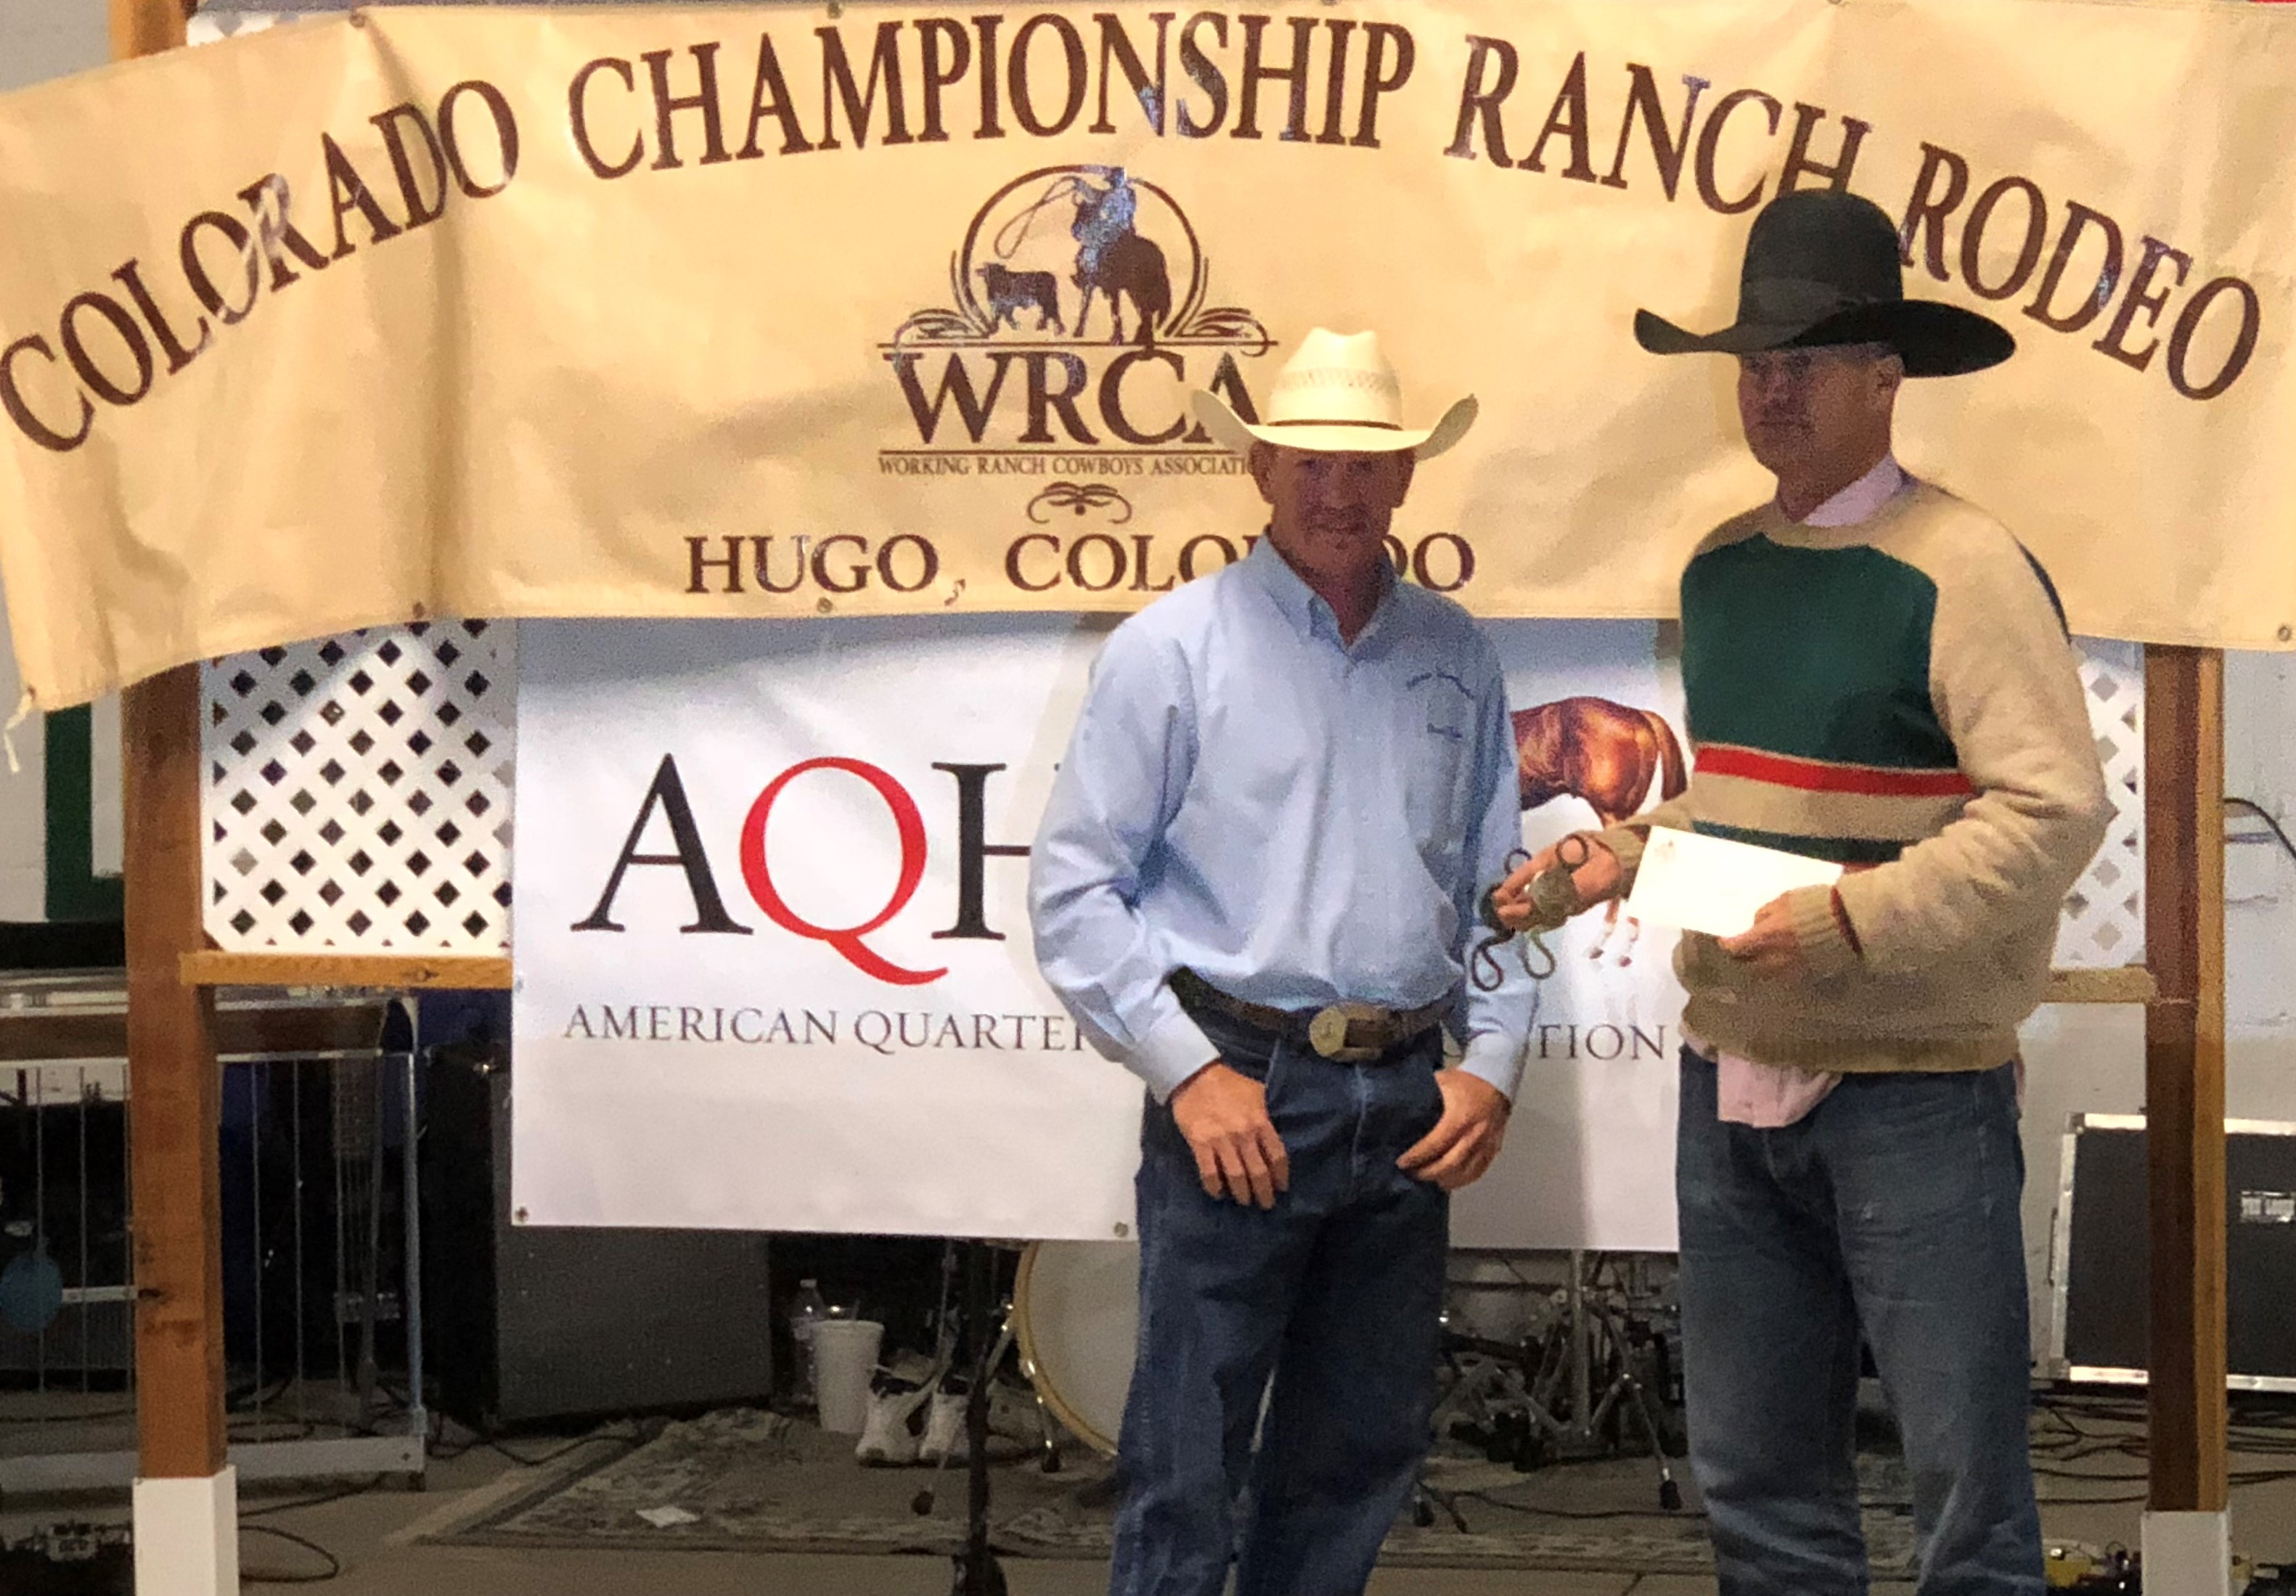 2018 Colorado Championship Ranch Rodeo Results Working